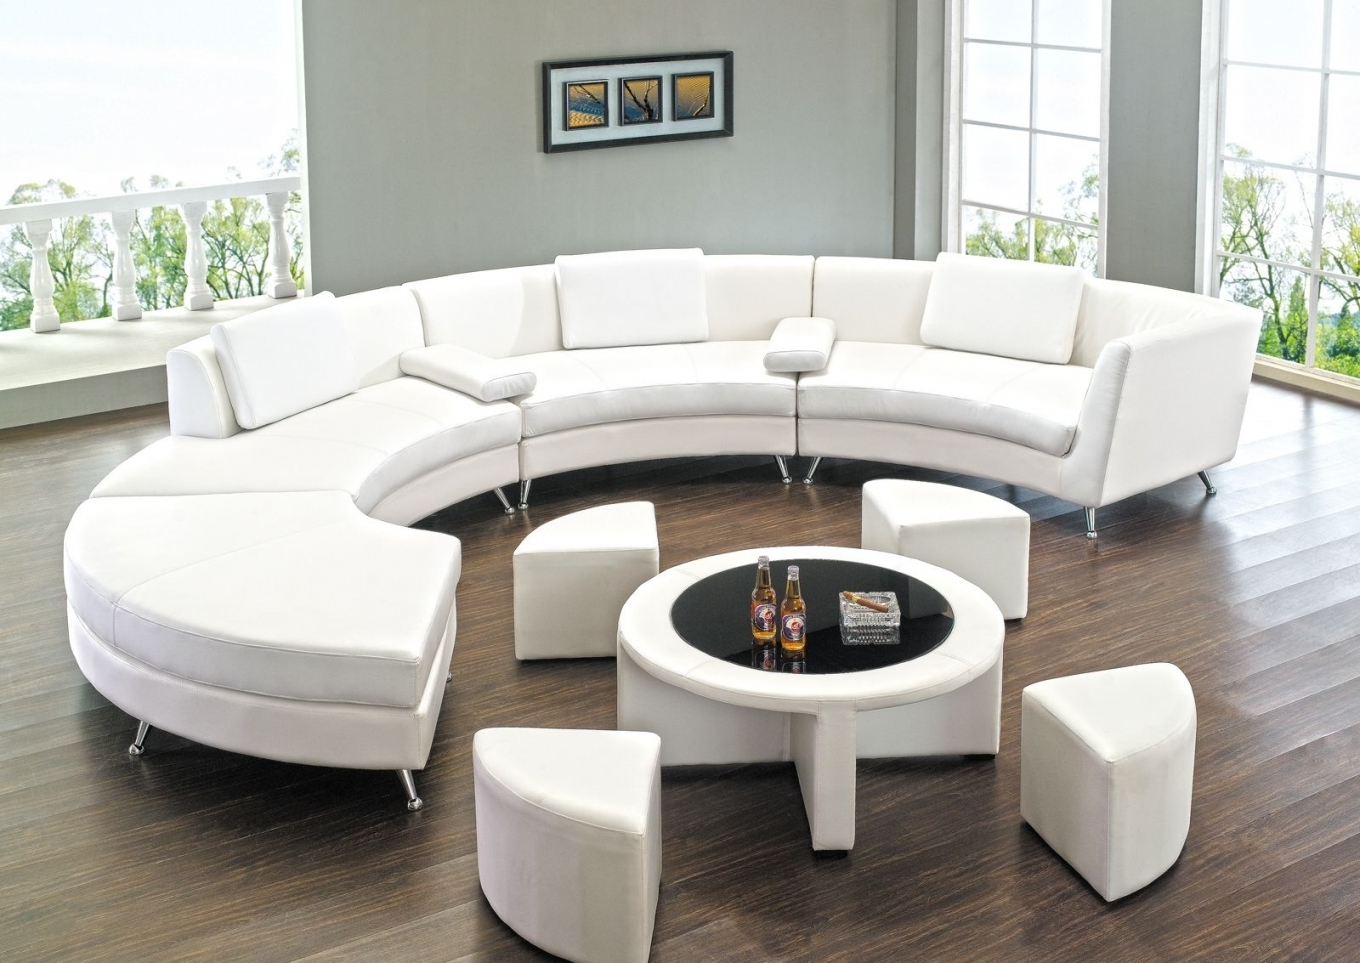 Catosfera Intended For 2019 Wayfair Sectional Sofas (View 13 of 20)